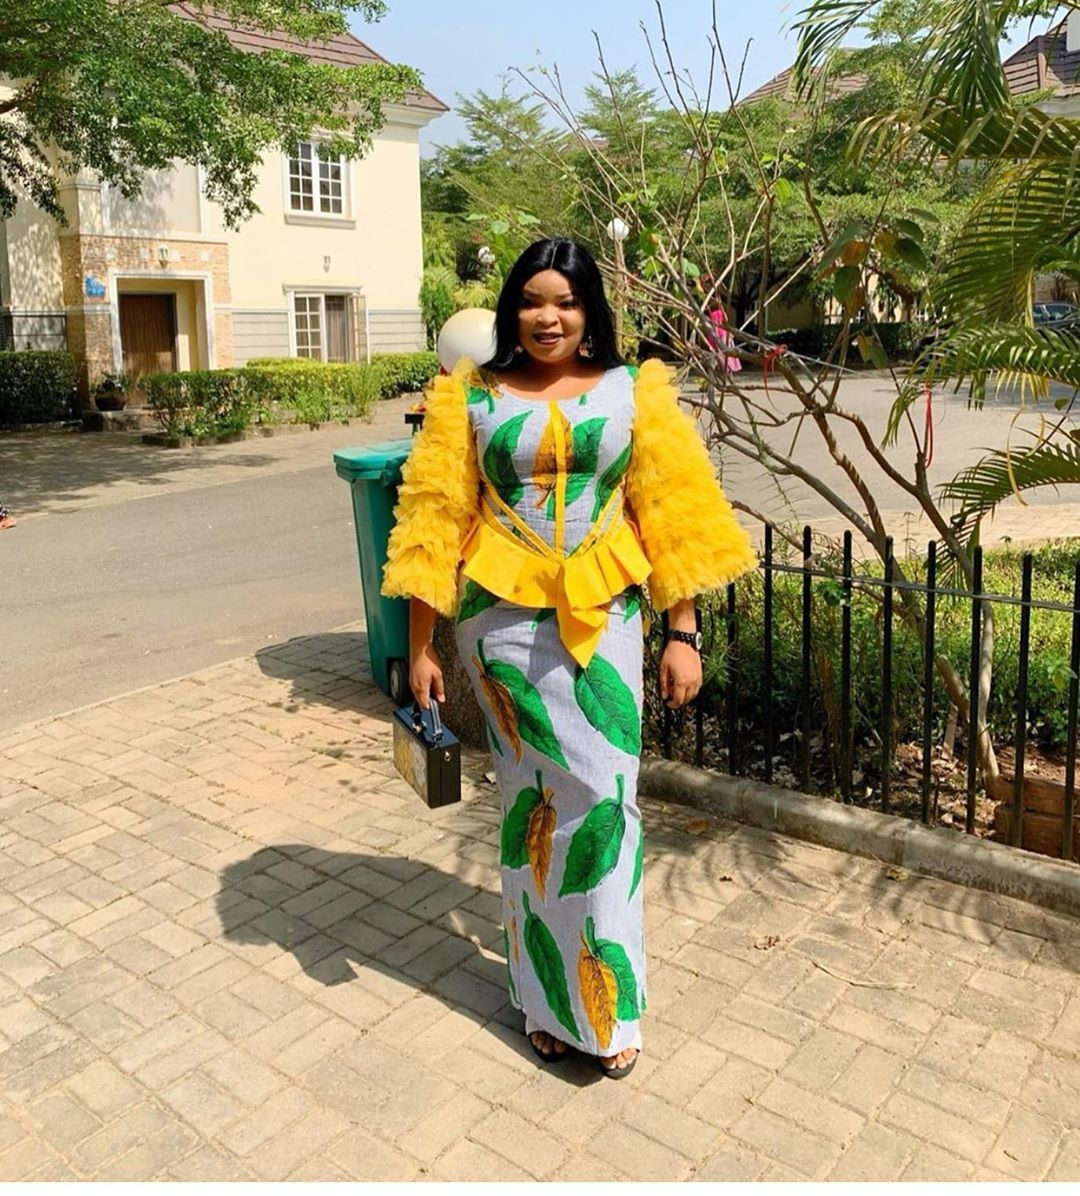 100 Latest Trending And Creative Ankara Style Designs For 2020 Updated In 2020 African Fashion Ankara African Clothing African Fashion